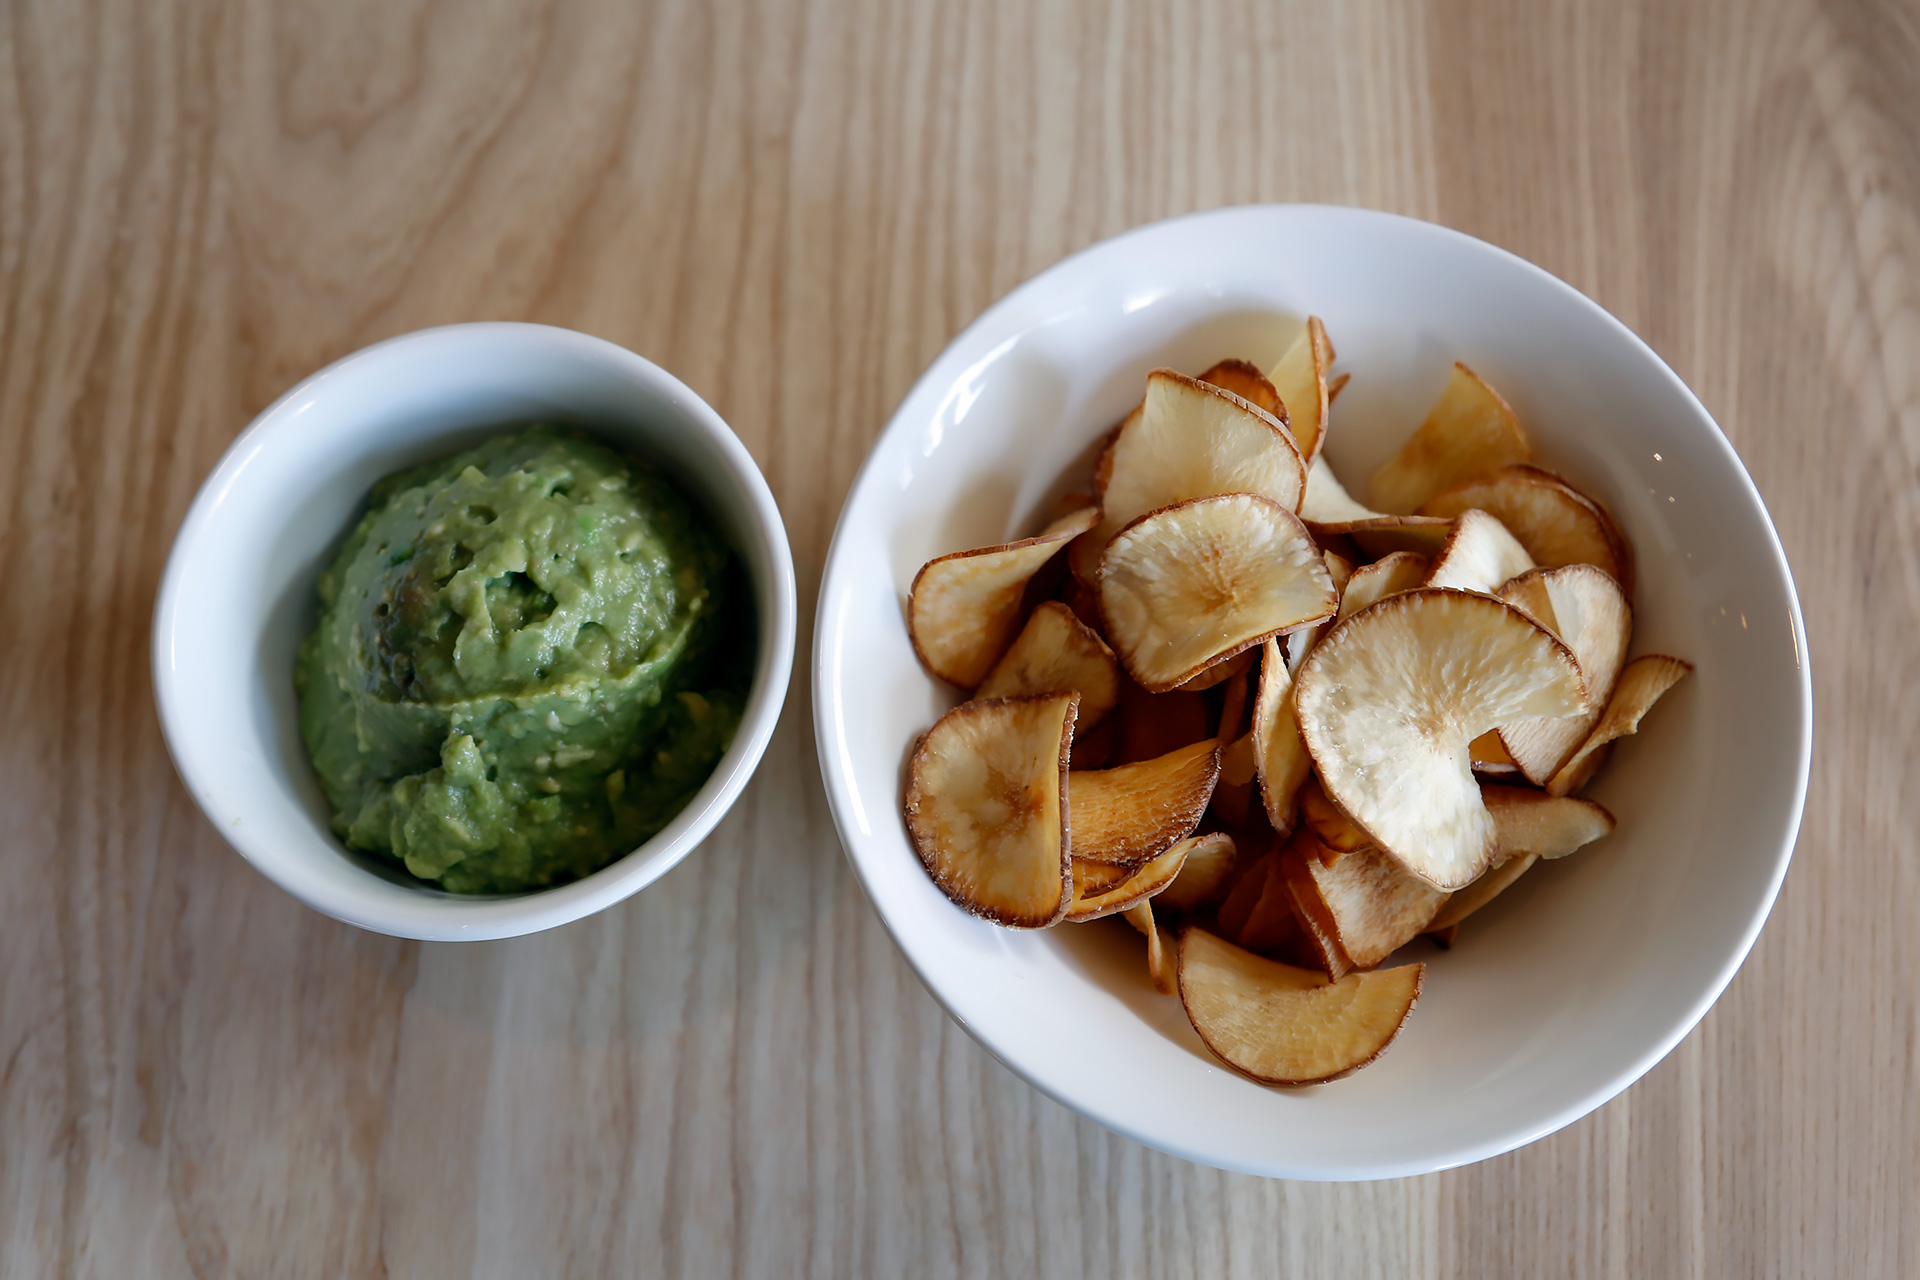 Avocado mash with yucca chips.